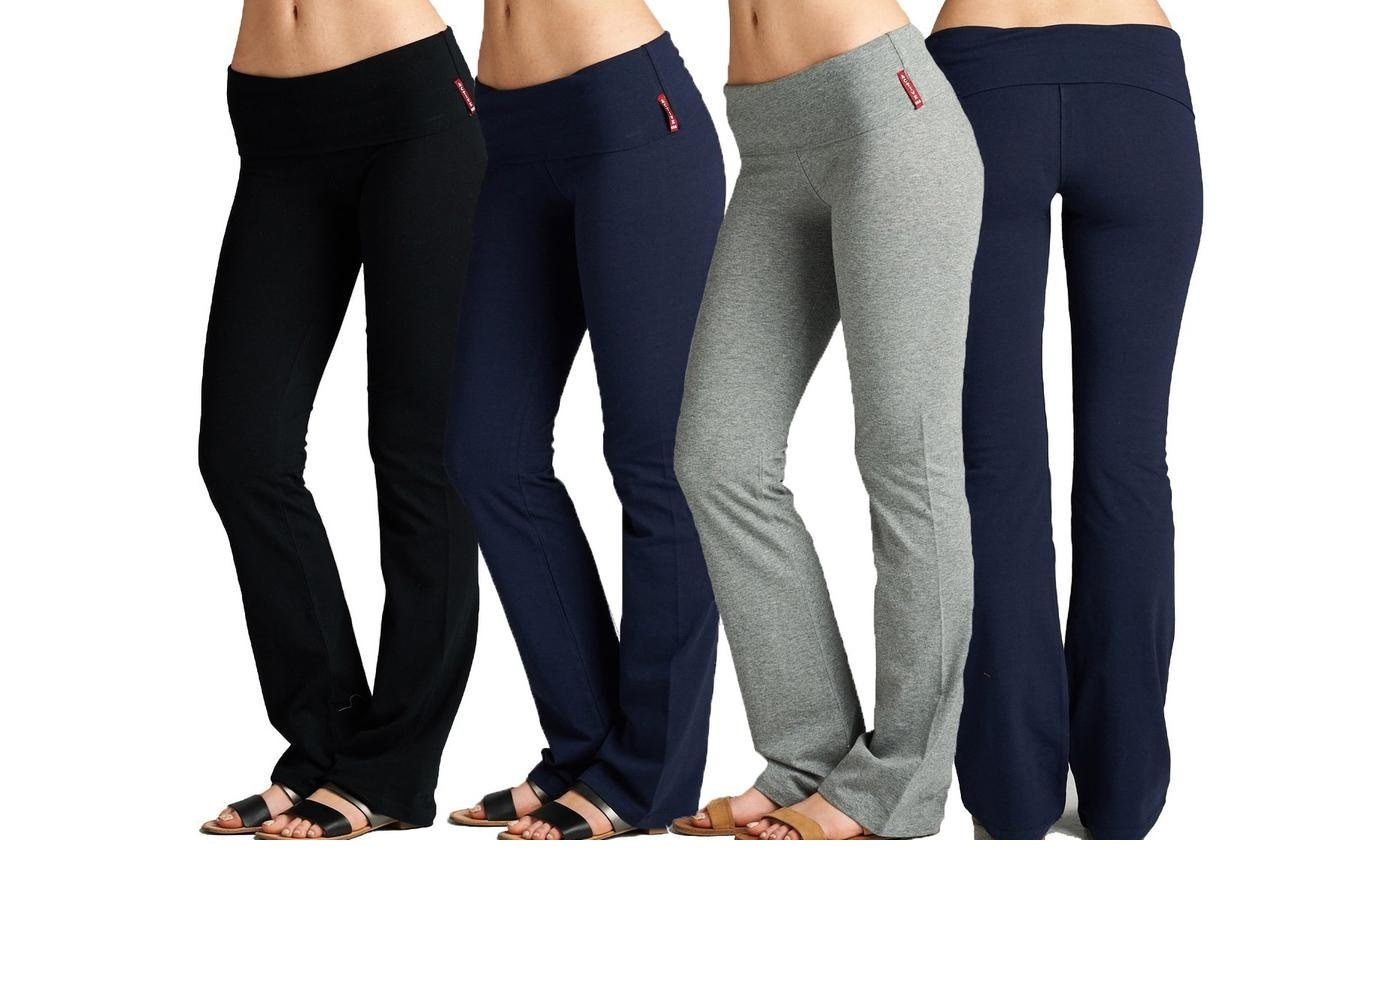 Unique Styles Fold-Over Waistband Stretchy Cotton Blend Yoga Pants (Small, 3 Pack:1-Black, 1-Navy, 1-Heather Grey)